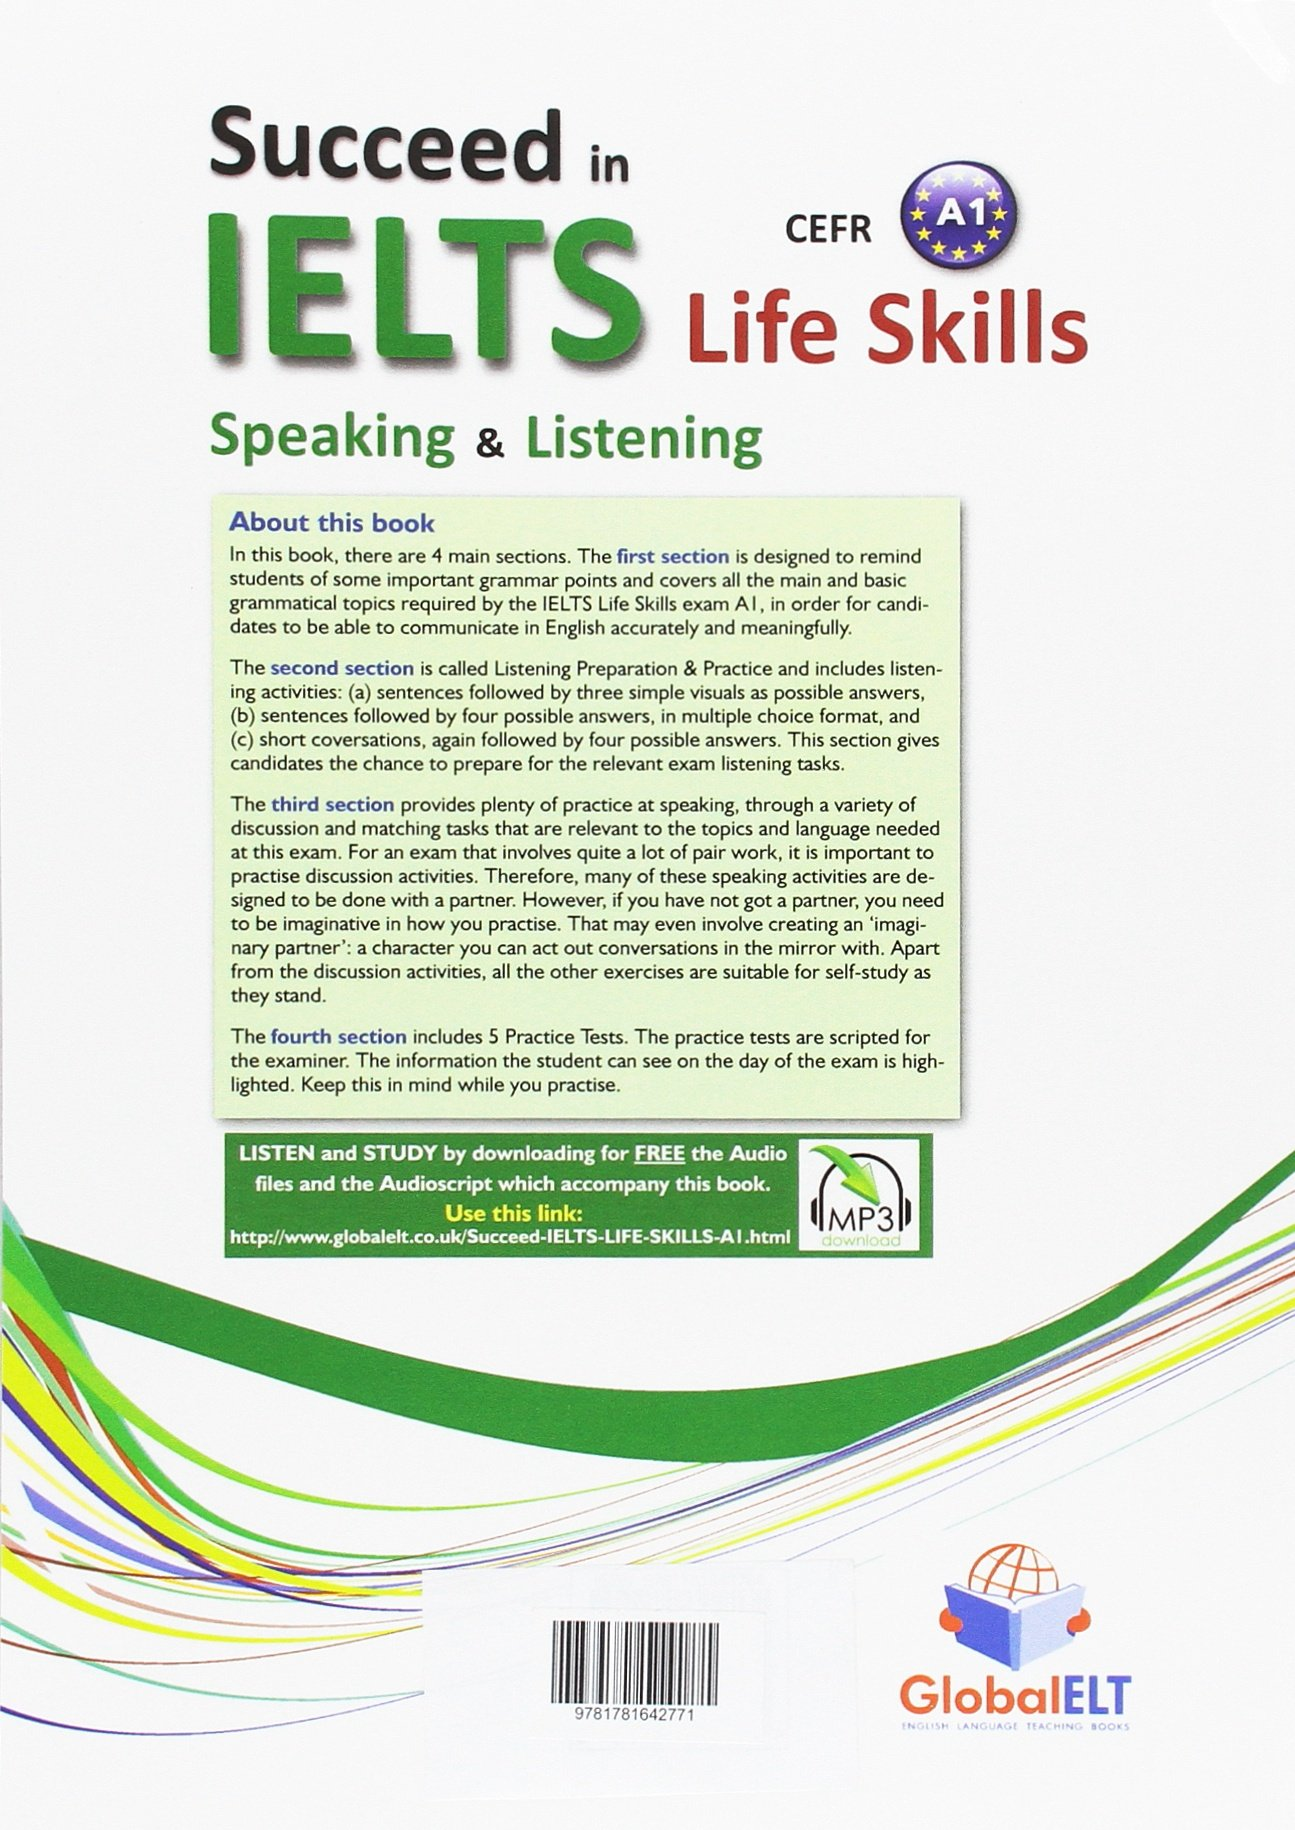 IELTS Life Skills - CEFR Level A1 - Speaking & Listening